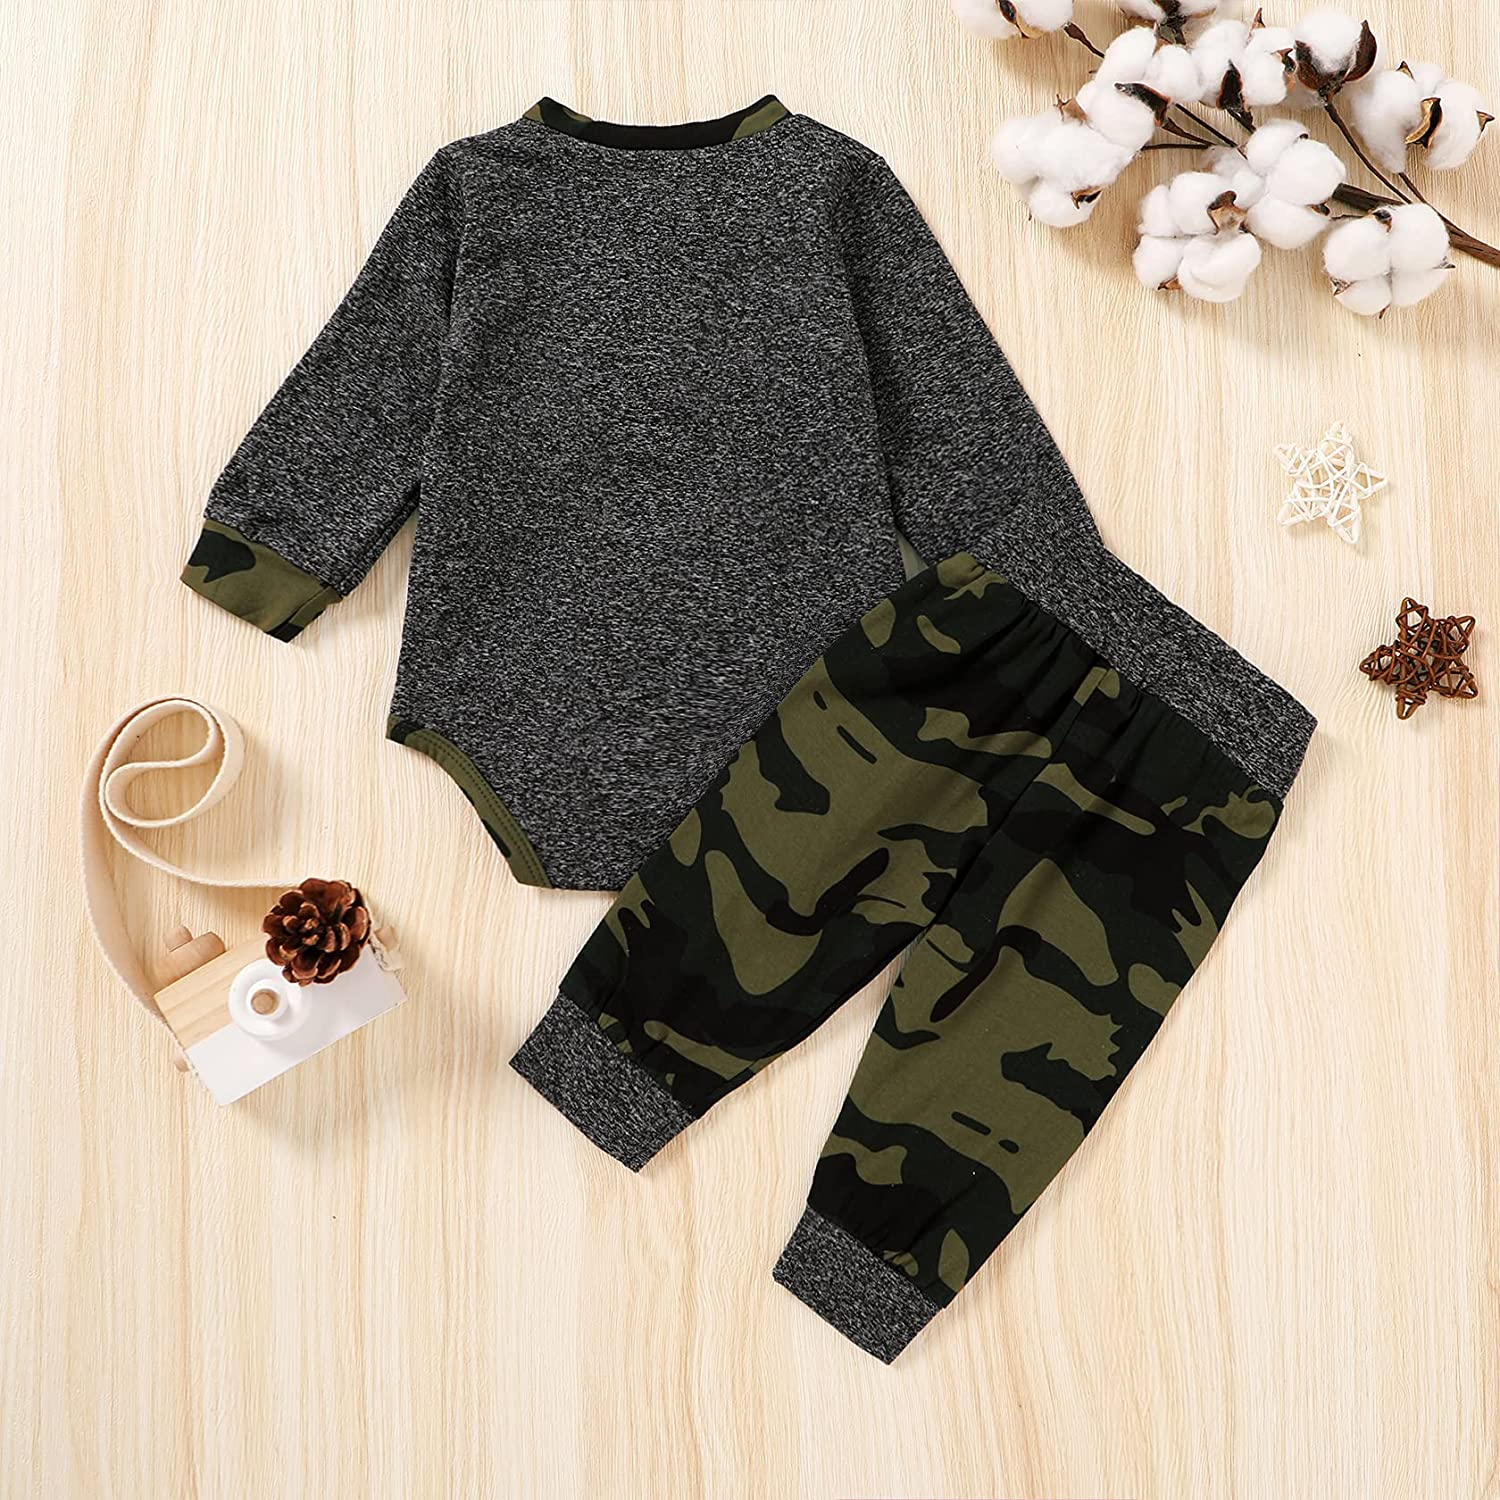 Newborn Baby Boy Clothes Long Sleeve Button Romper Top+Plaid Pants 2PCS Infant Fall Winter Outfit